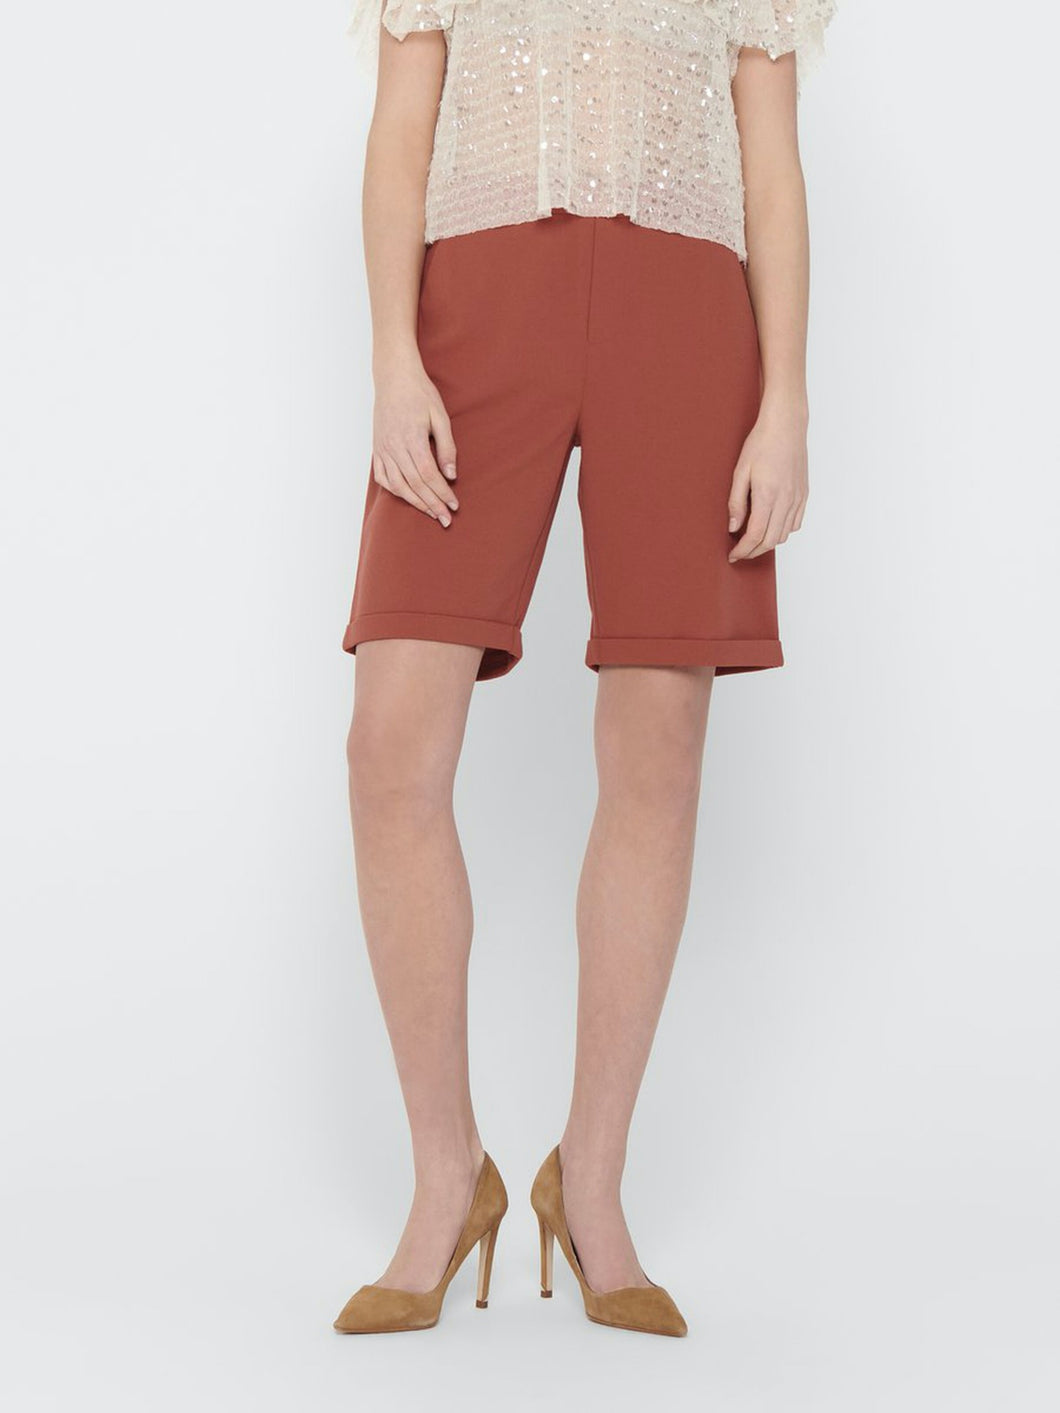 Catia Shorts - Etruscan Red / XS - SHORTS DAM, GRÖN,